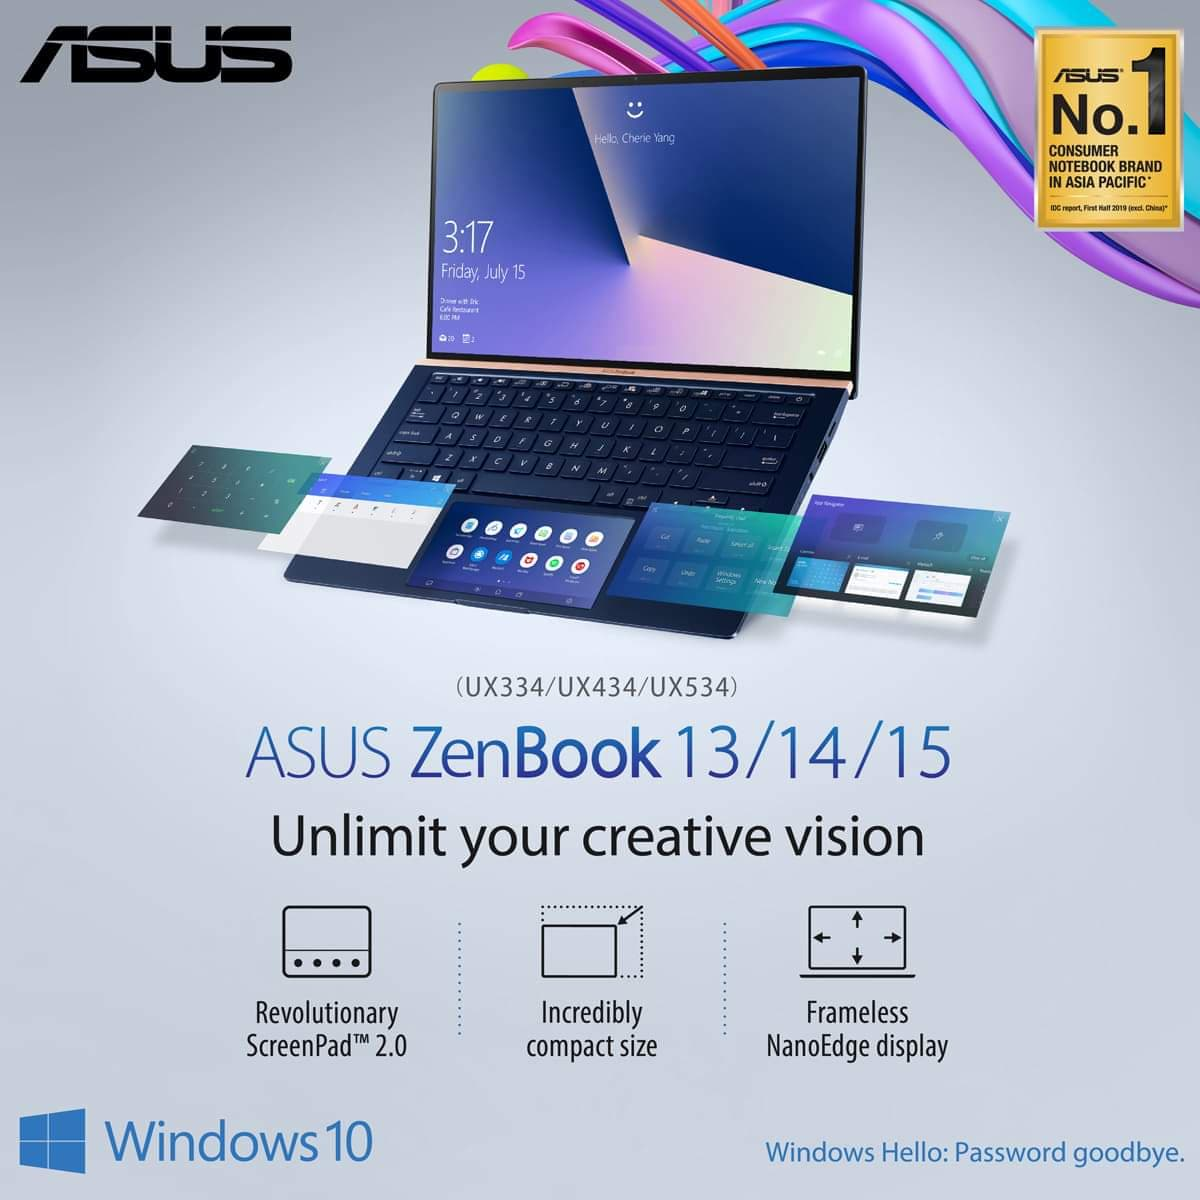 769ads_asus_zenbook_dec62.jpg